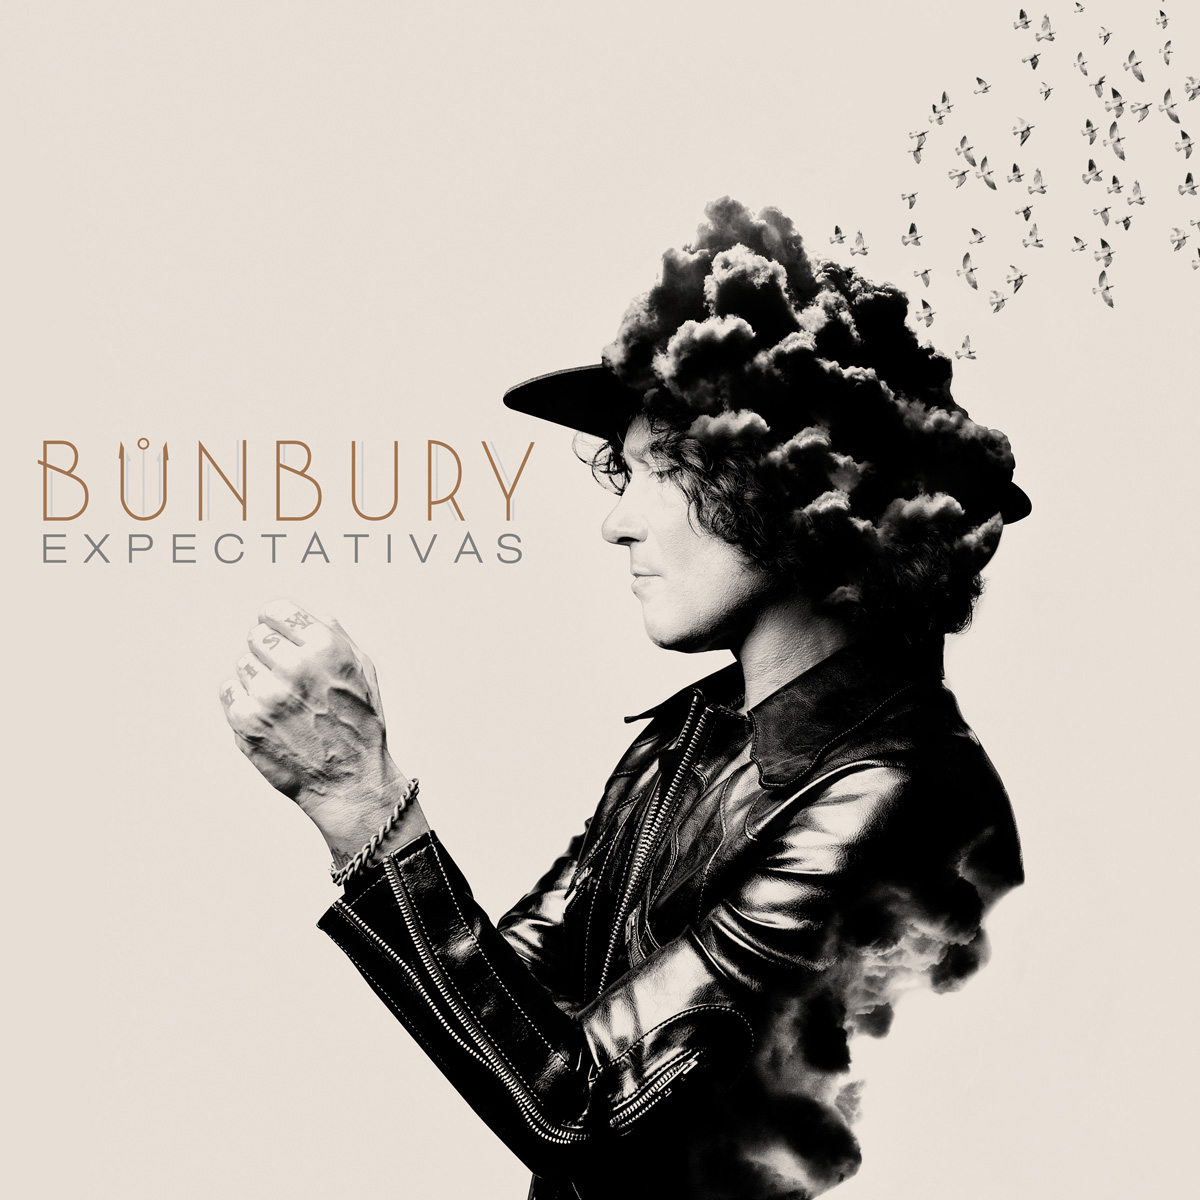 BUNBURY - EXPECTATIVAS